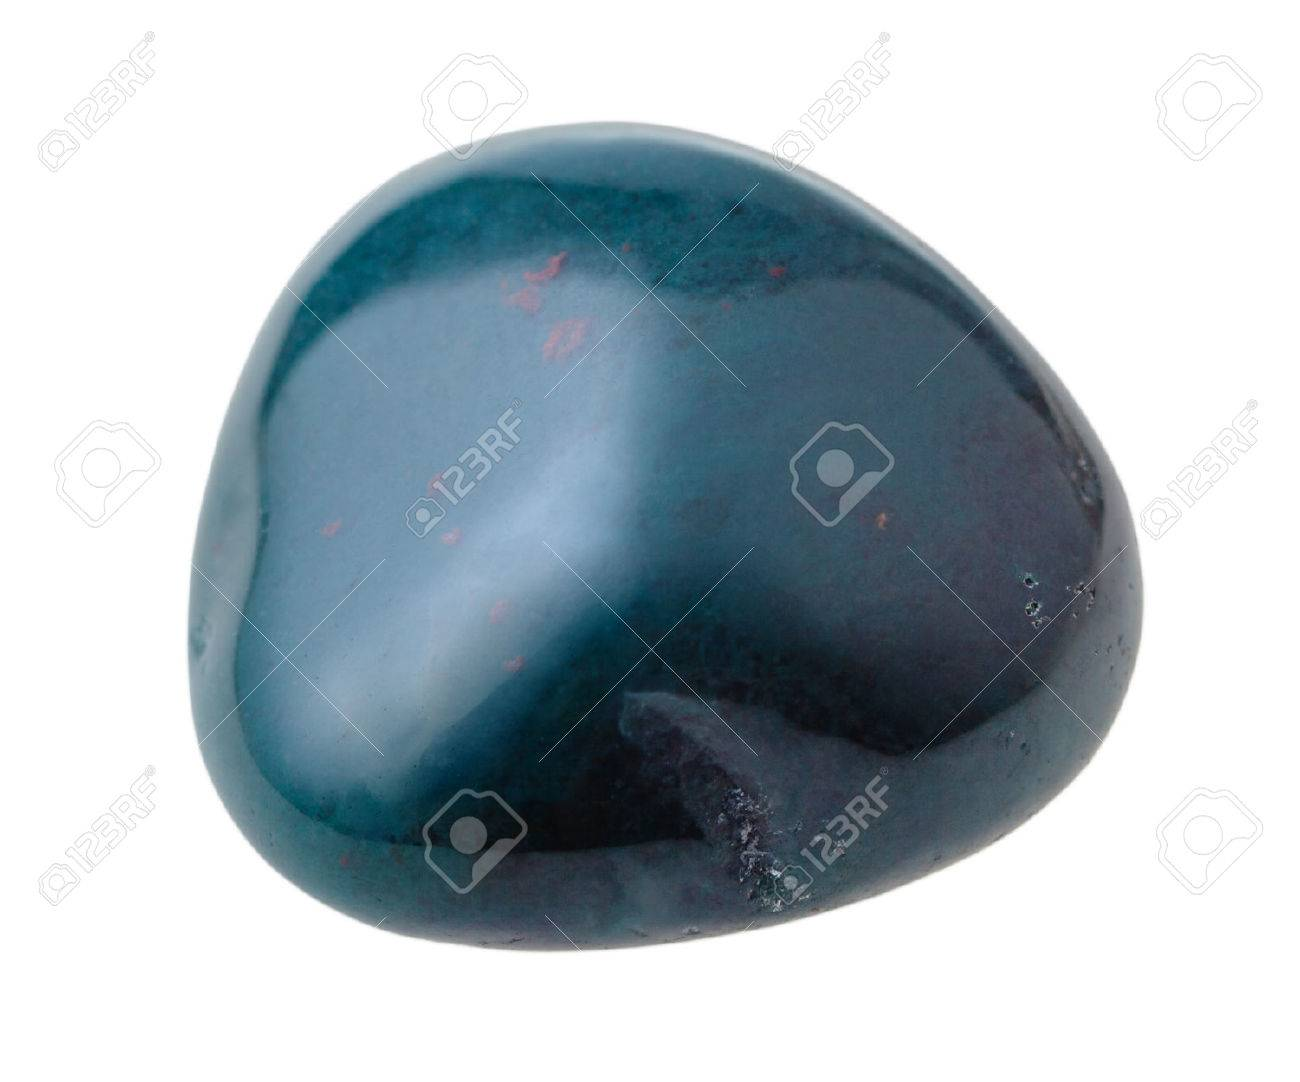 natural mineral gemstone - one heliotrope (bloodstone) gem stone